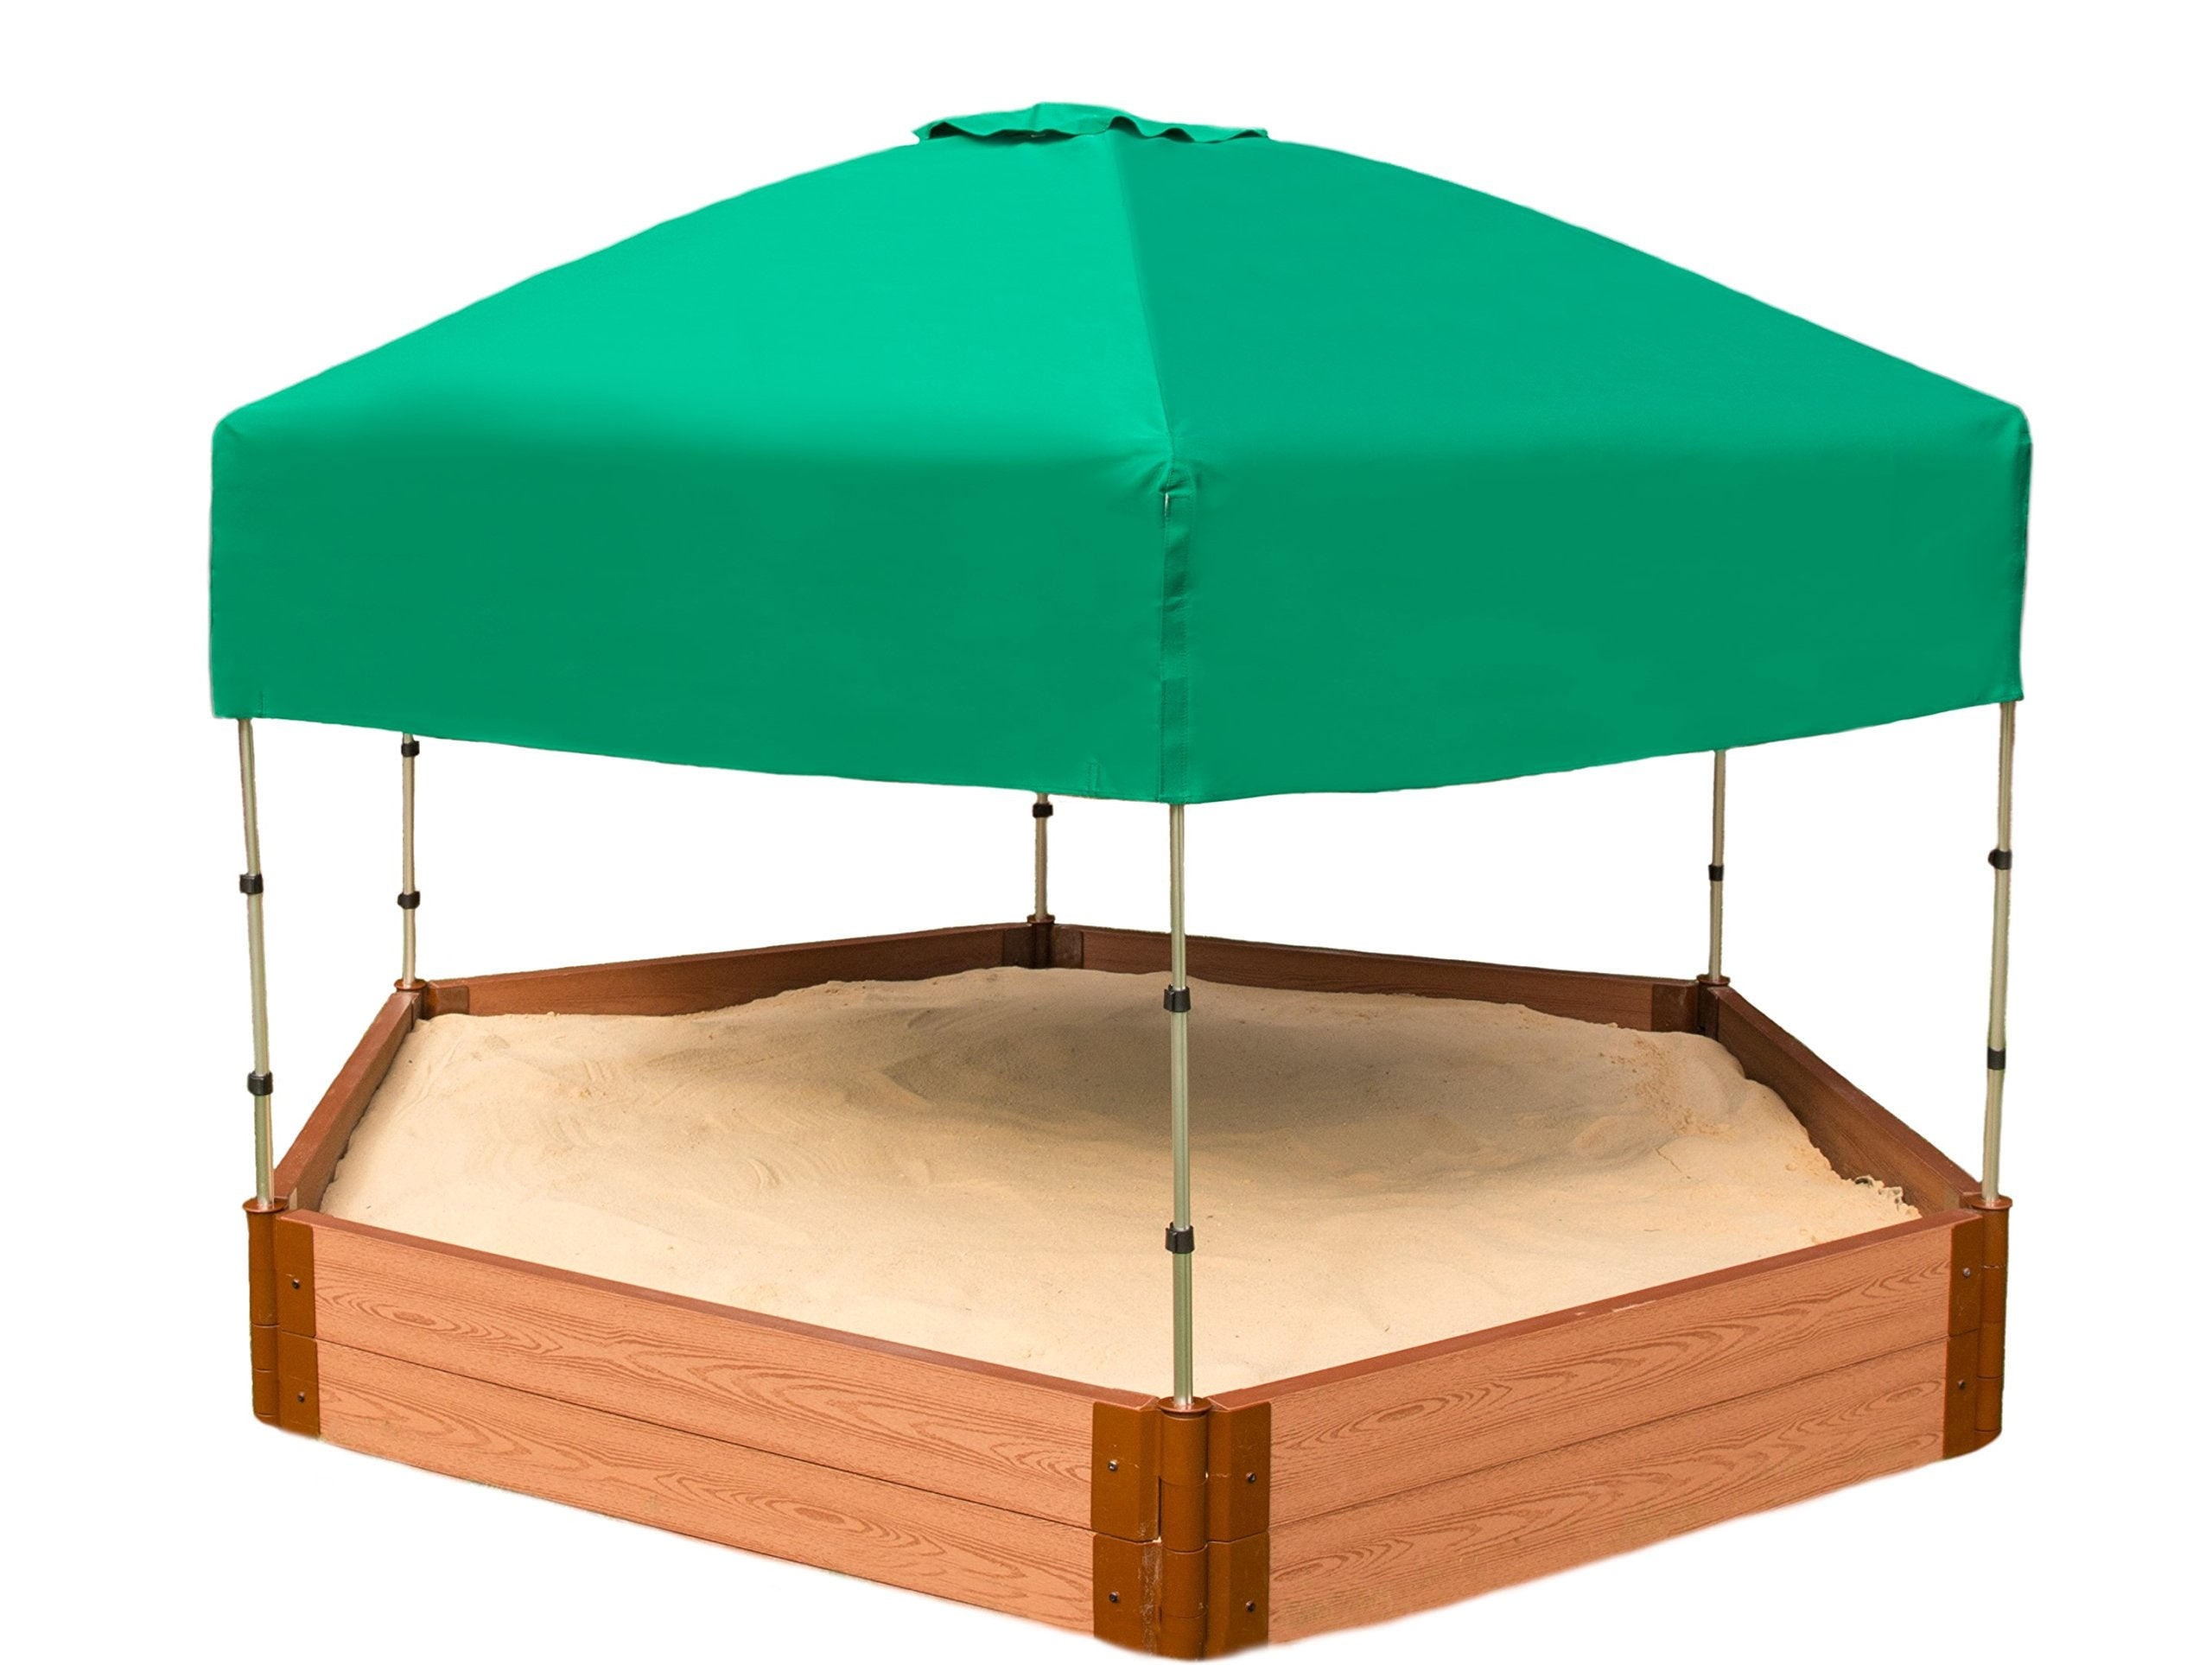 "Frame It All Tool-Free Classic Sienna 7ft. x 8ft. x 11in. Composite Hexagon Sandbox Kit with Telescoping Canopy/Cover - 2"" Profile"